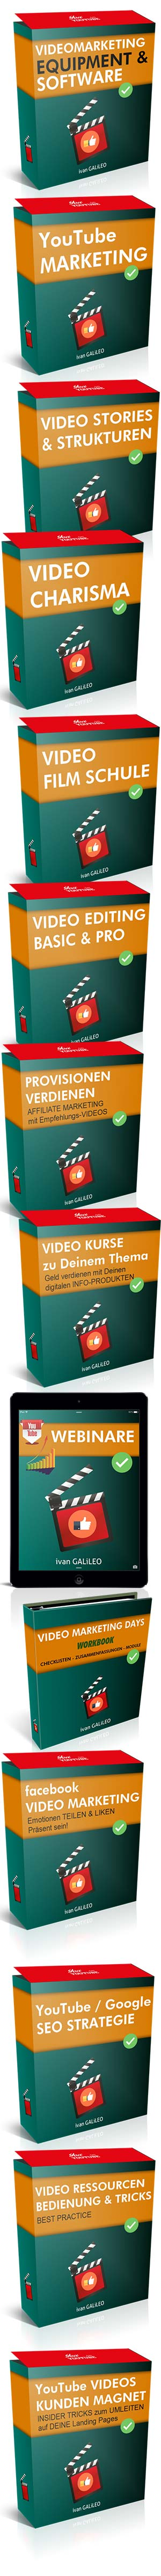 videoacademy.com video marketing akademie